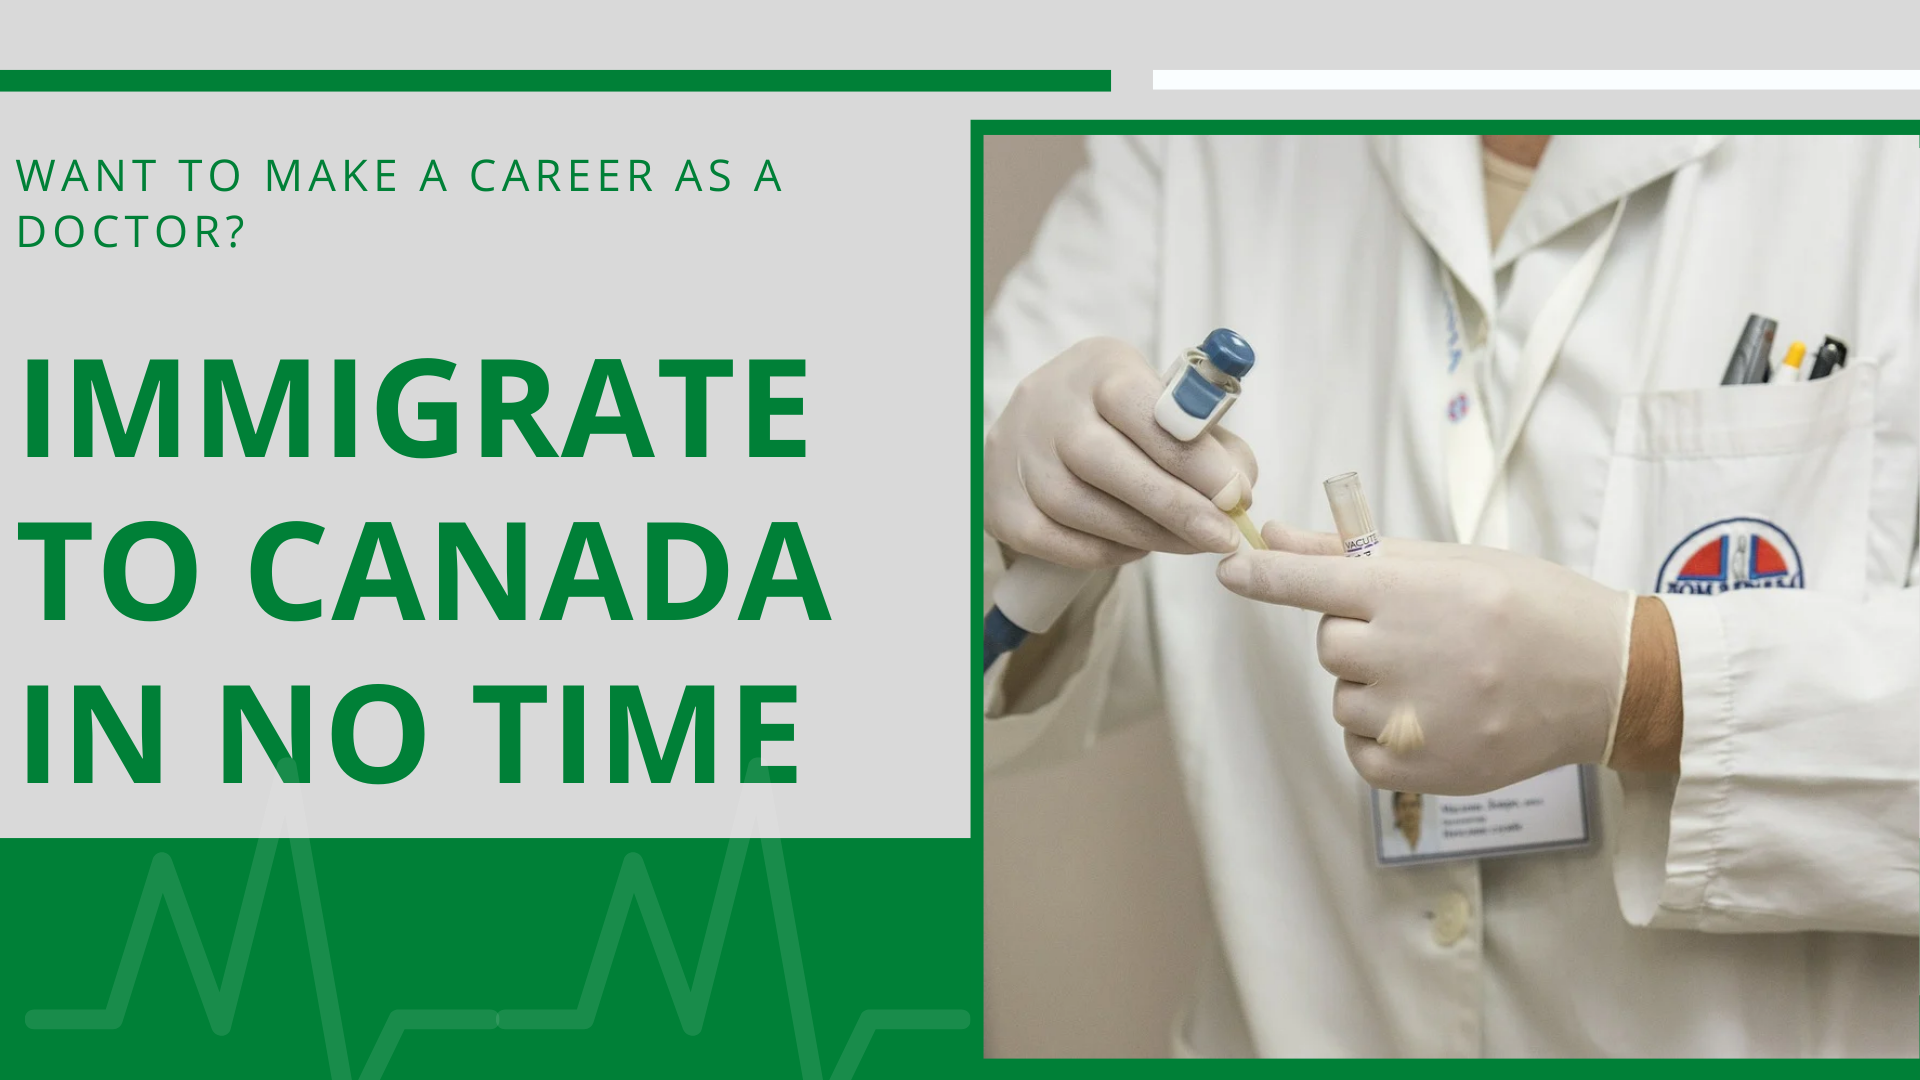 Want to make a career as a doctor? Immigrate to Canada in no time